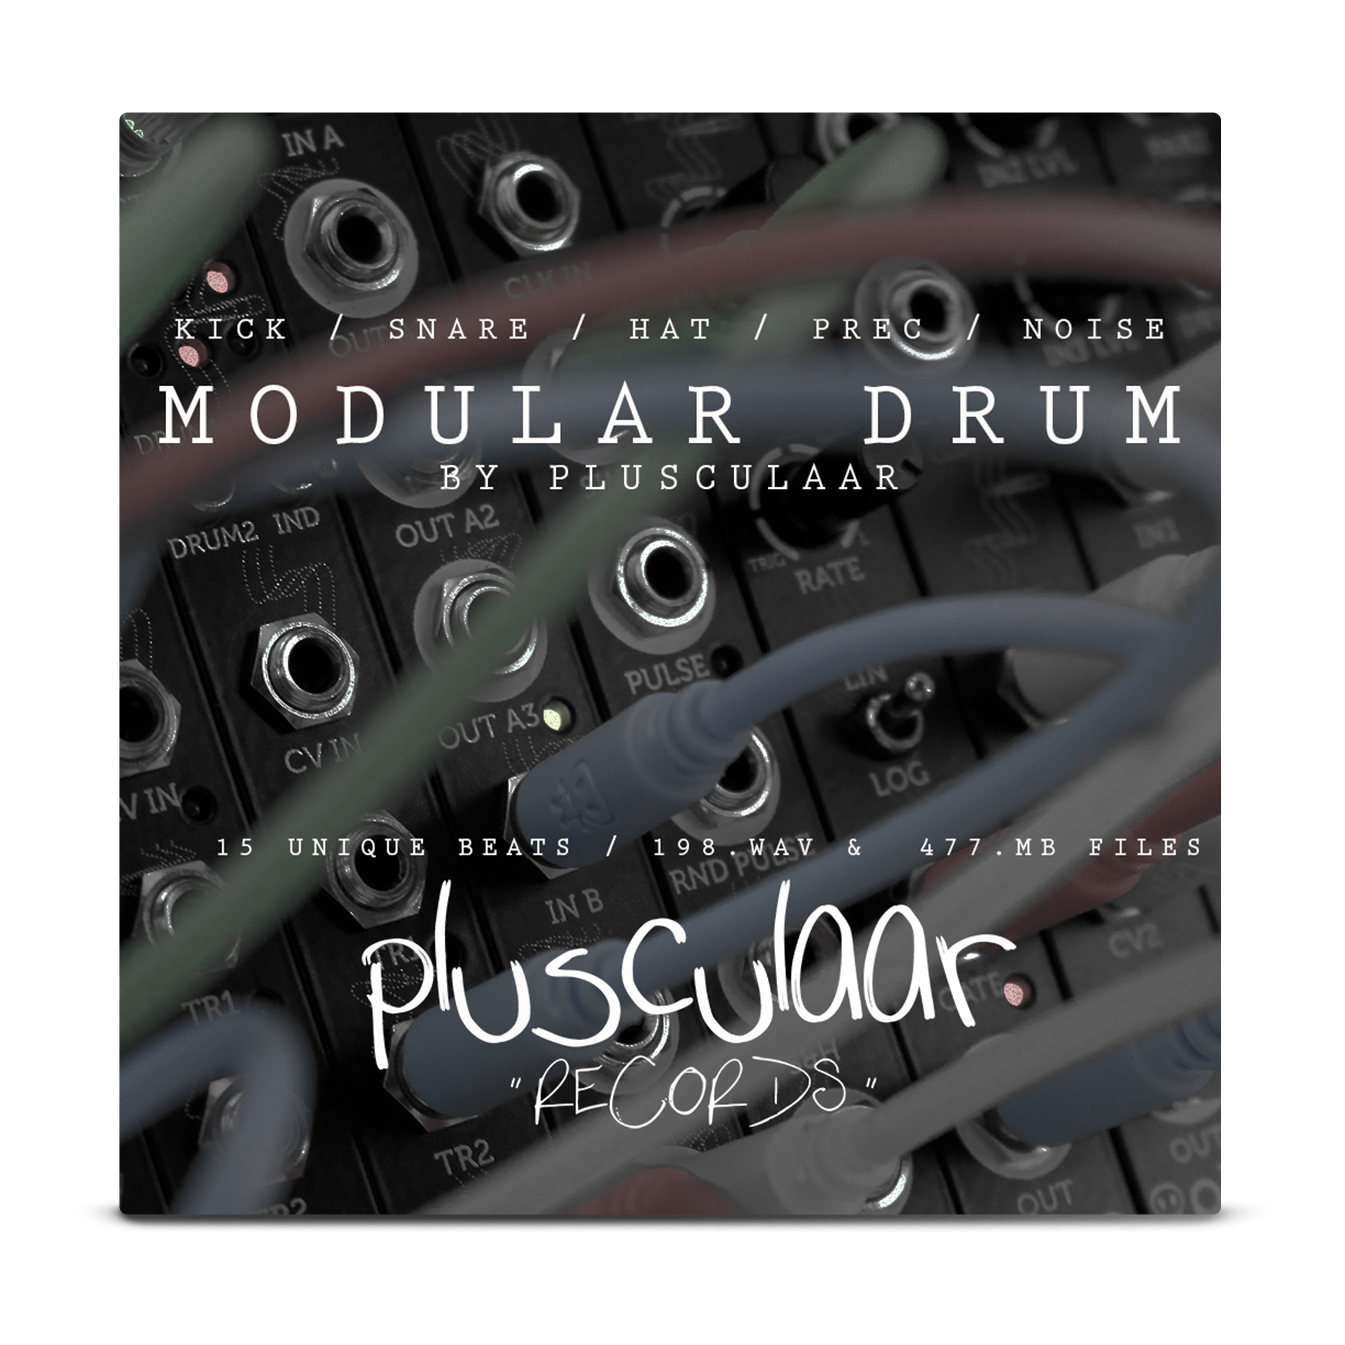 Modular Drum by Plusculaar